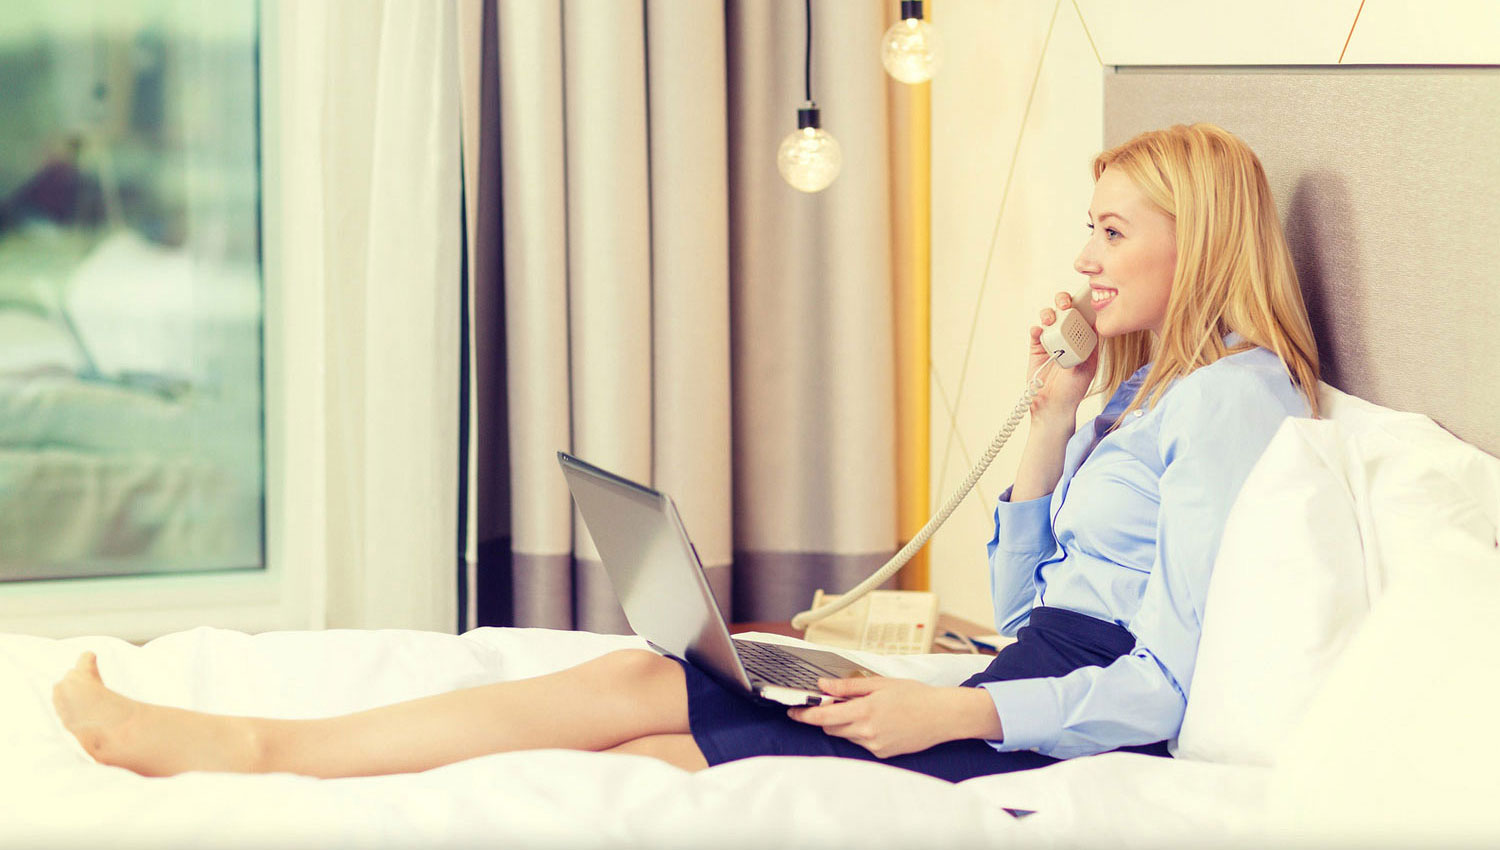 business lady in a skirt seating on the bed while making phone calls with laptop